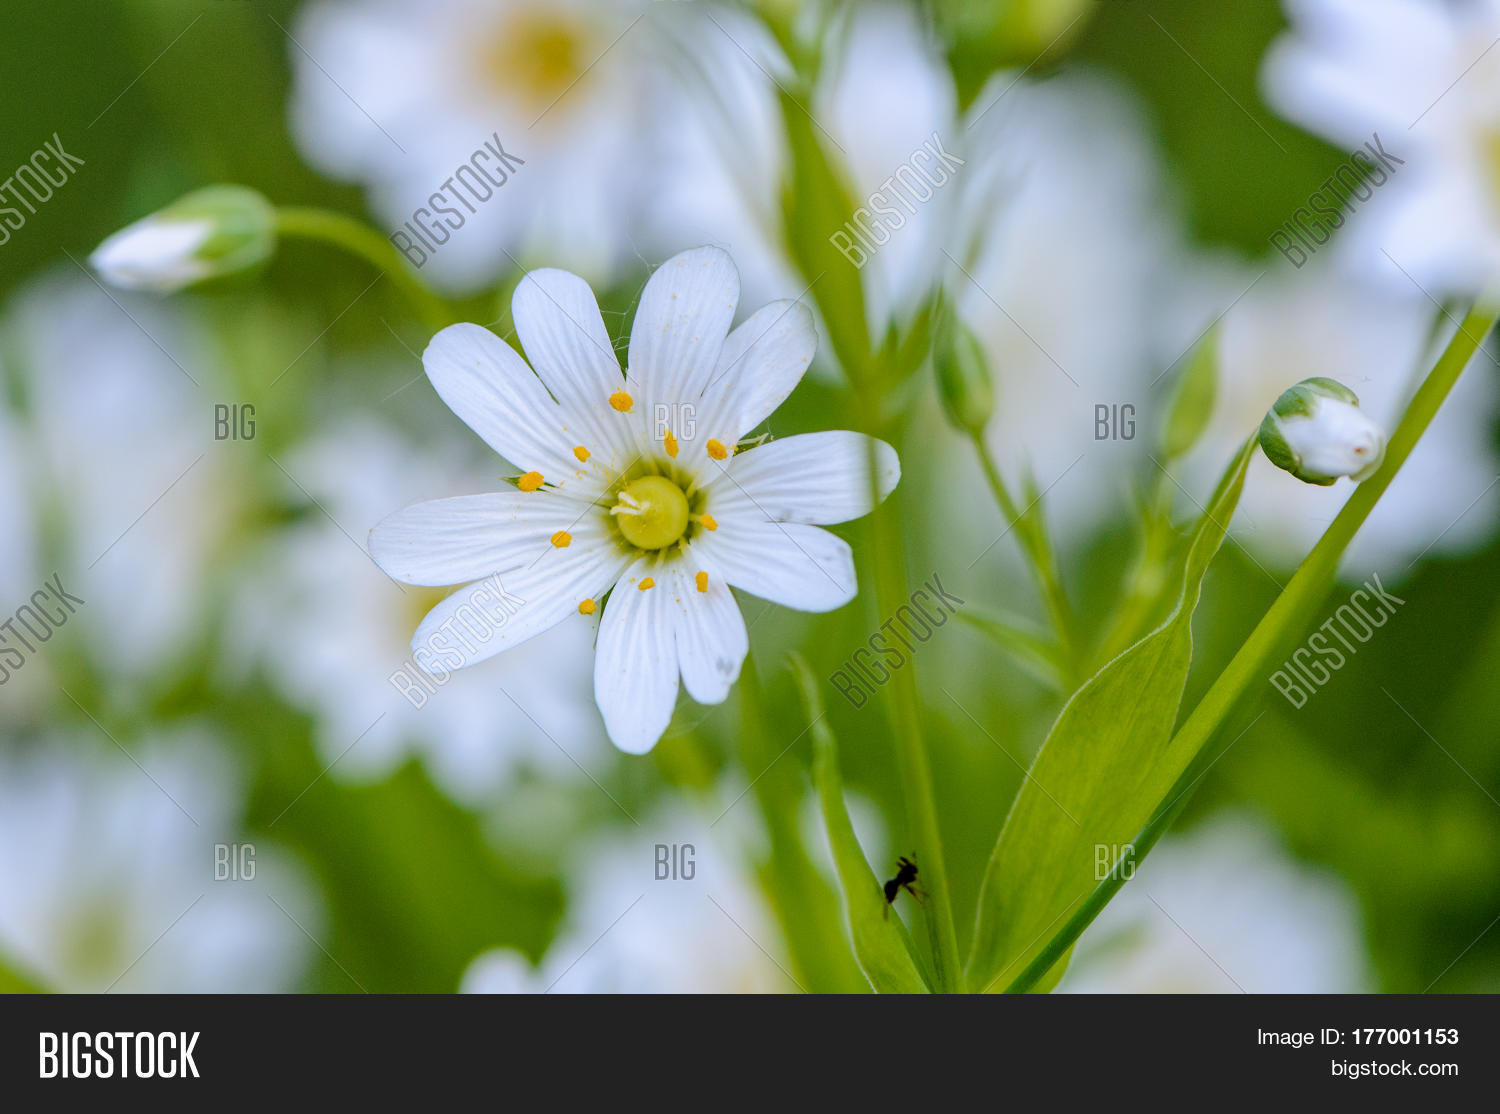 Forest Plant Stellate Image Photo Free Trial Bigstock